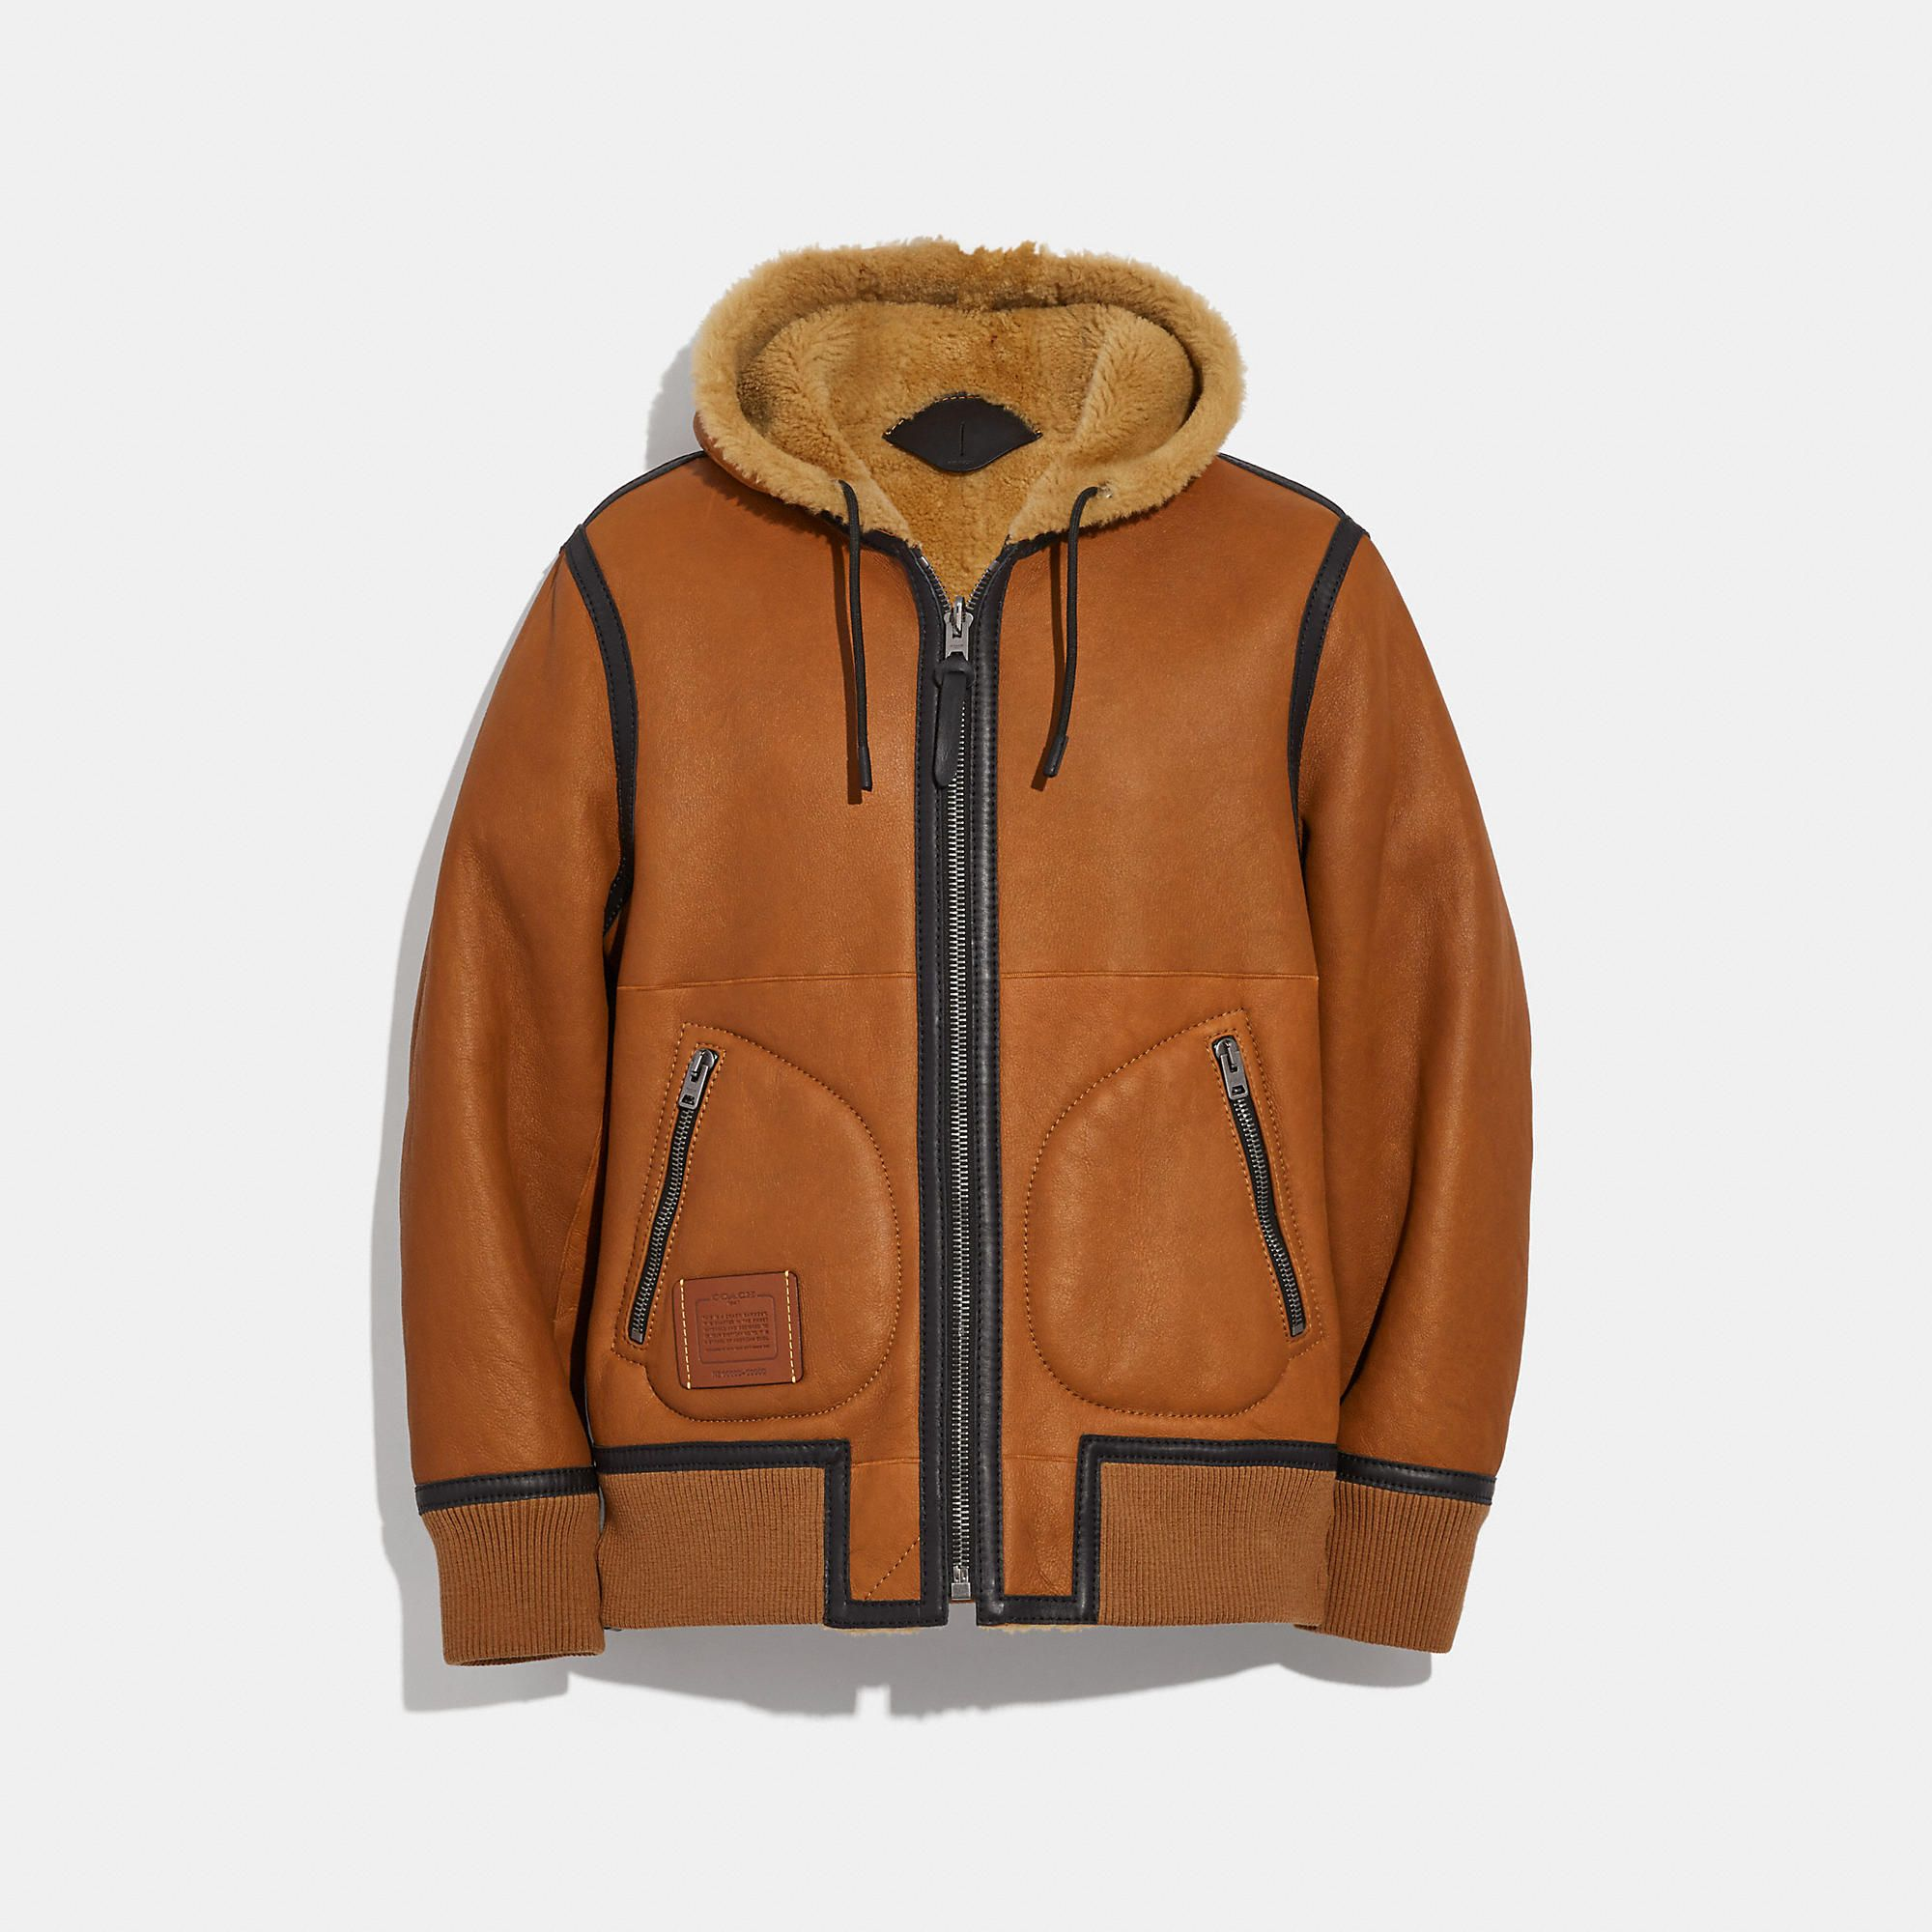 Coach Official Site Designer Handbags Wallets Clothing Menswear Shoes More Shearling Jacket Bold Jackets Hoodies [ 2000 x 2000 Pixel ]